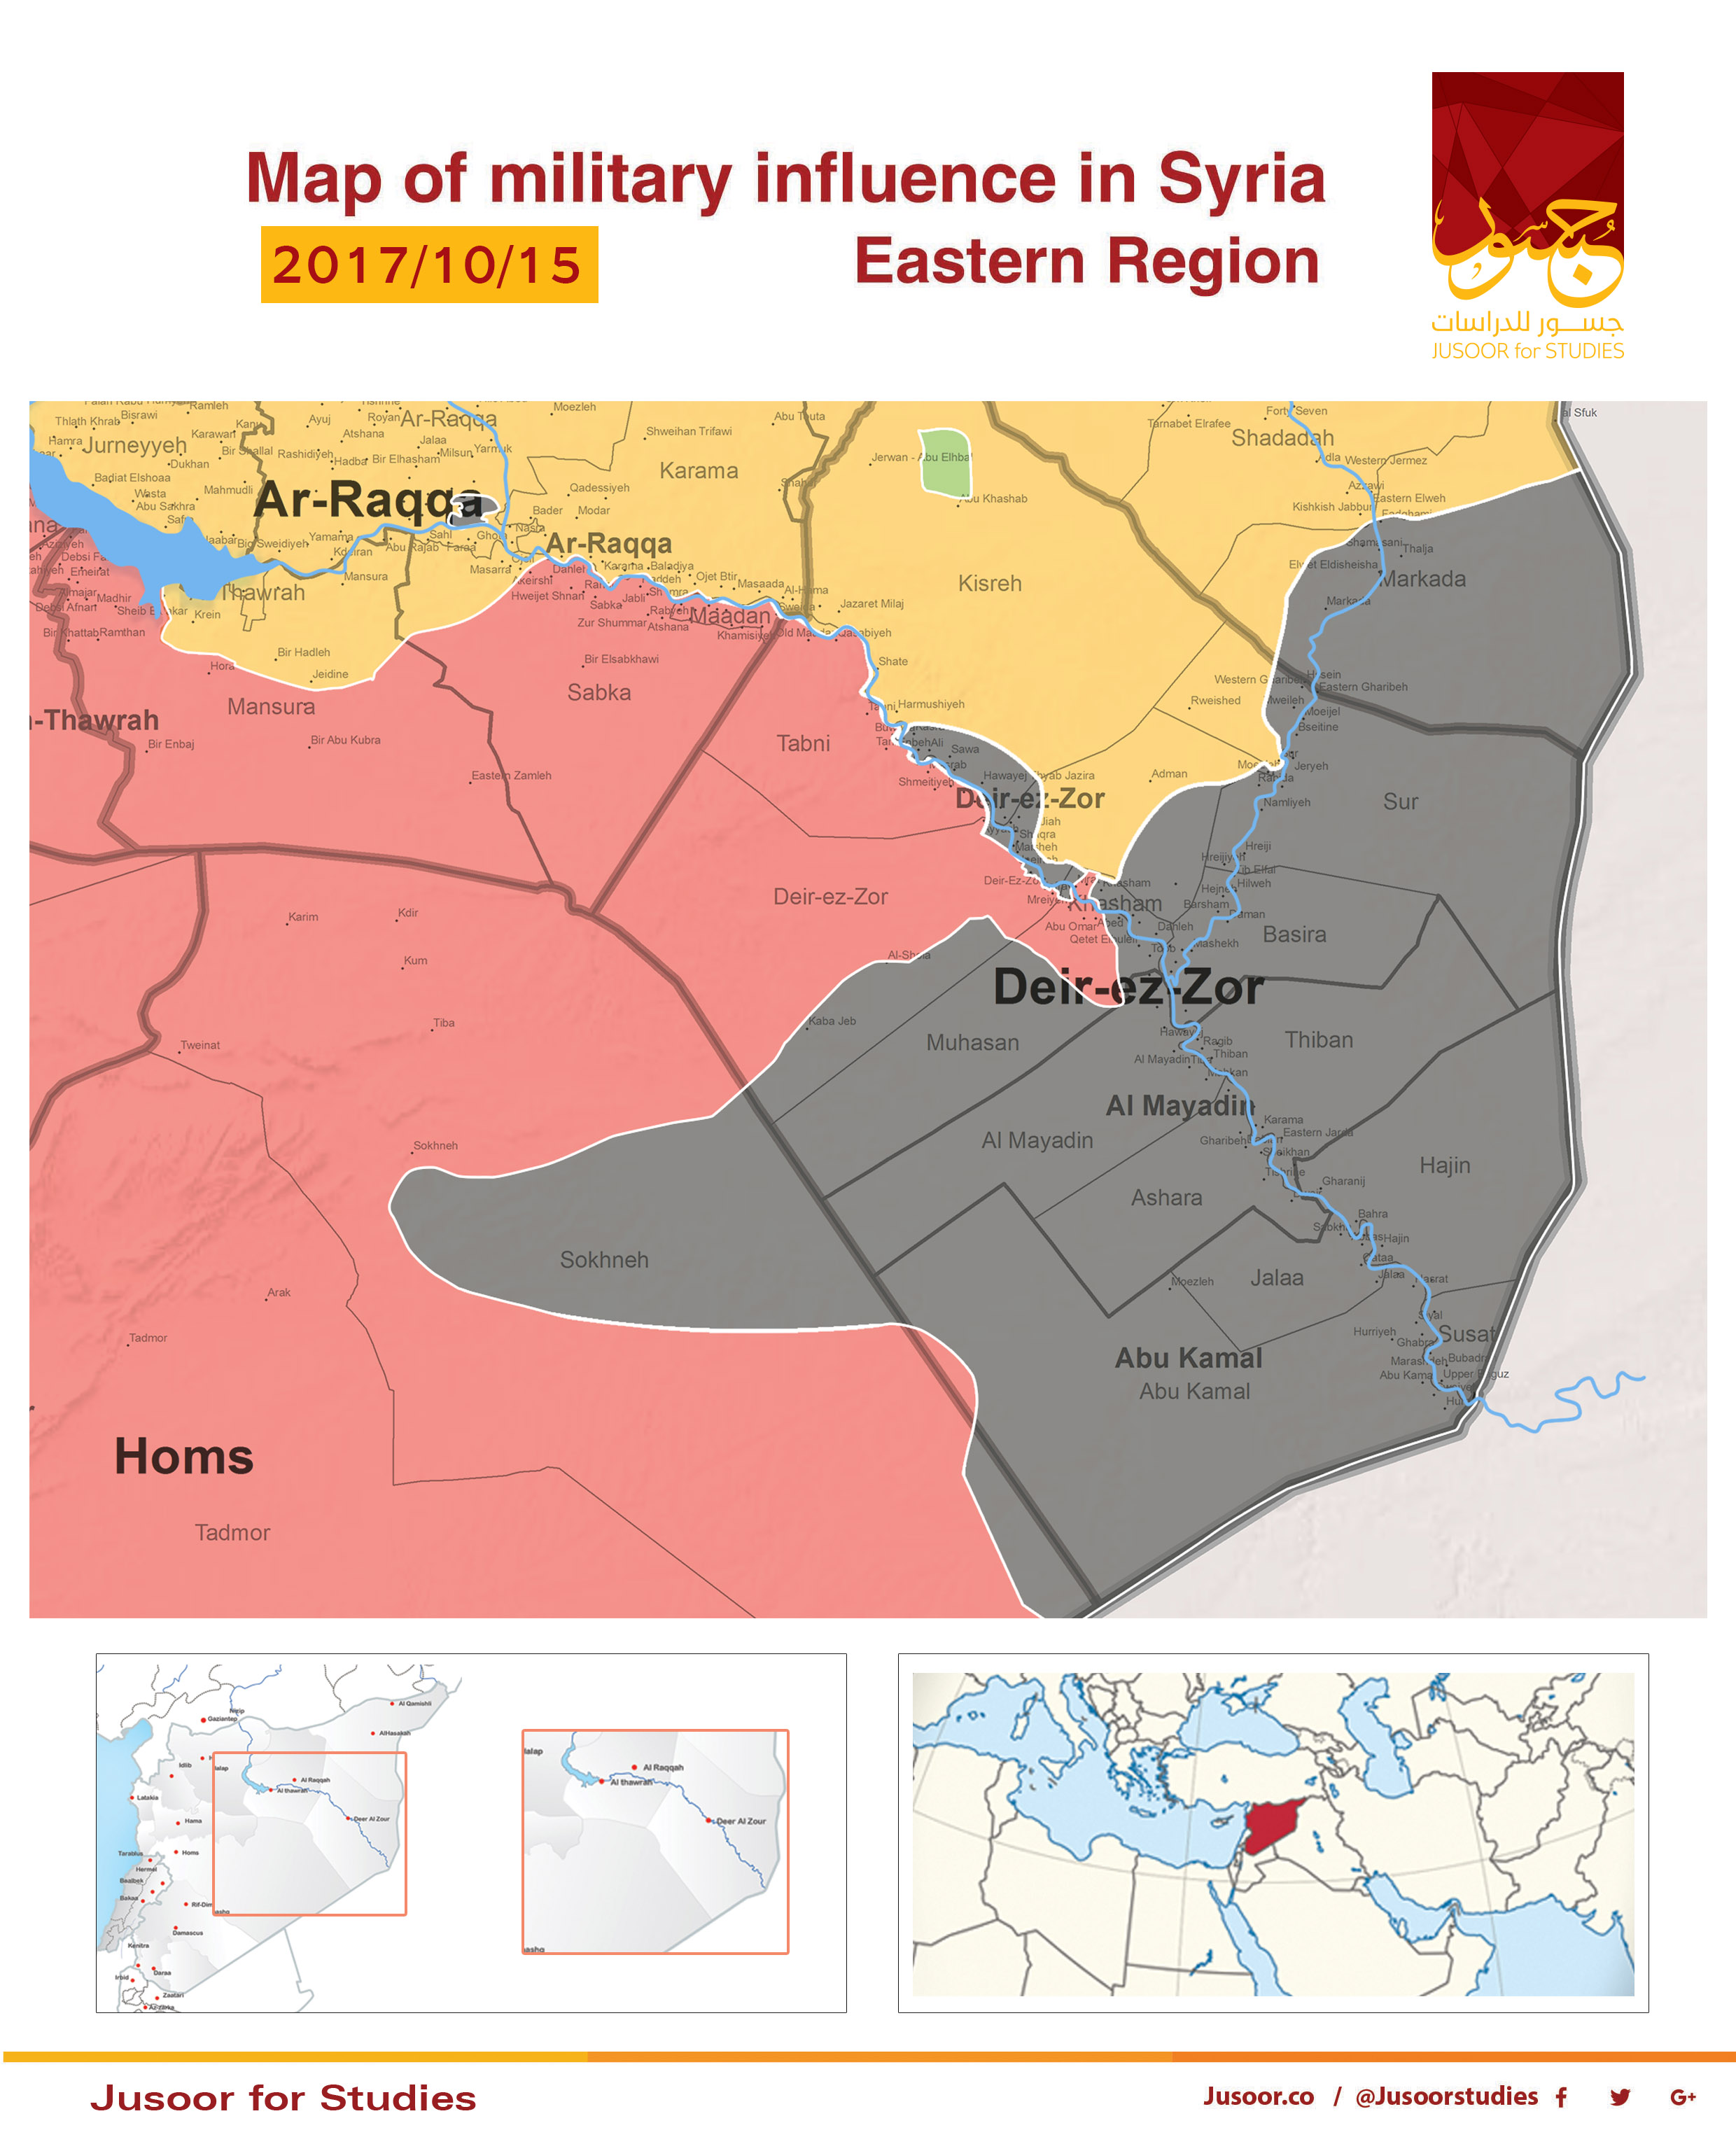 Map of military influence in Syria 15102017